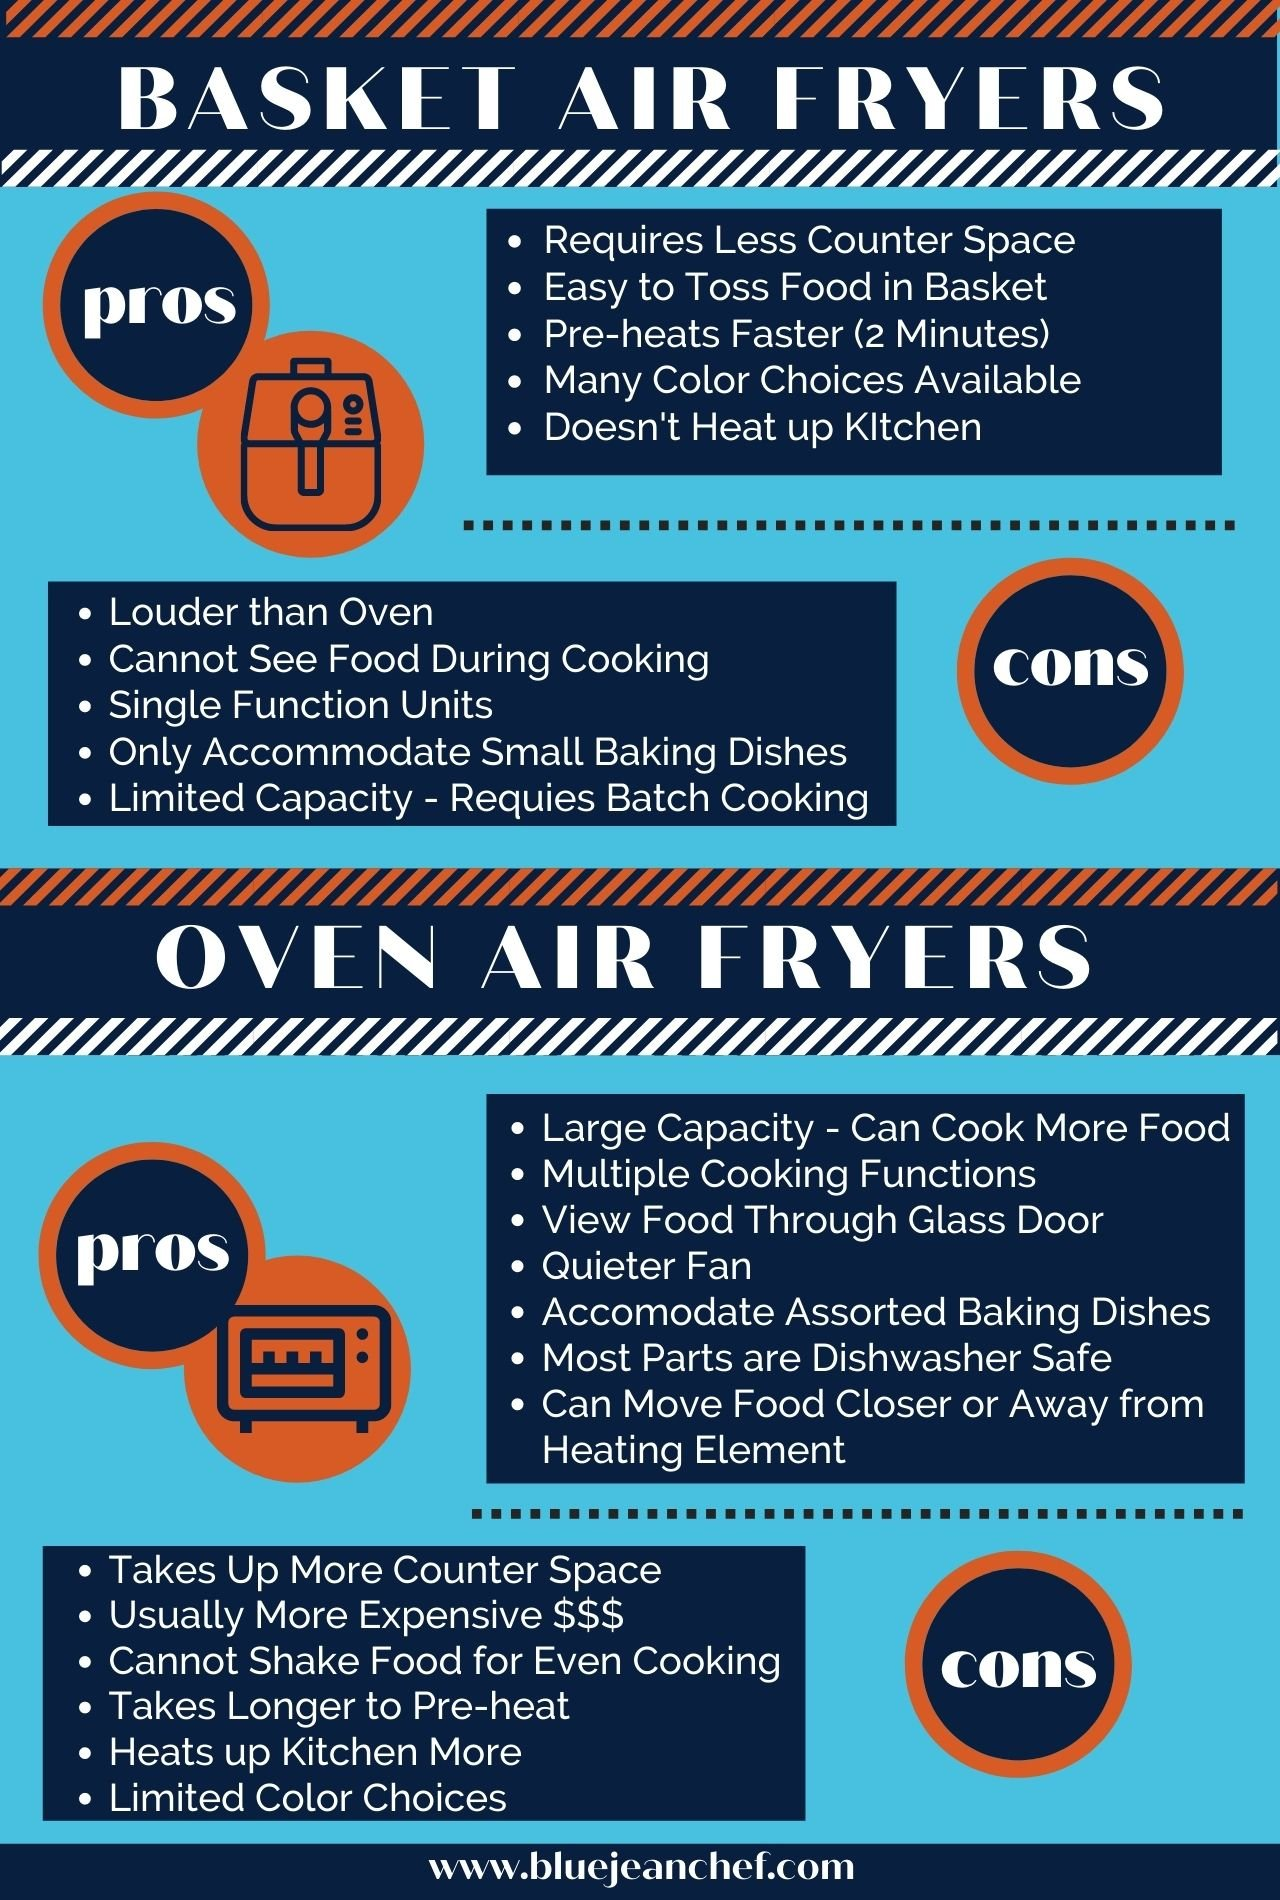 An info graphic explaining the pros and cons of different air fryers.